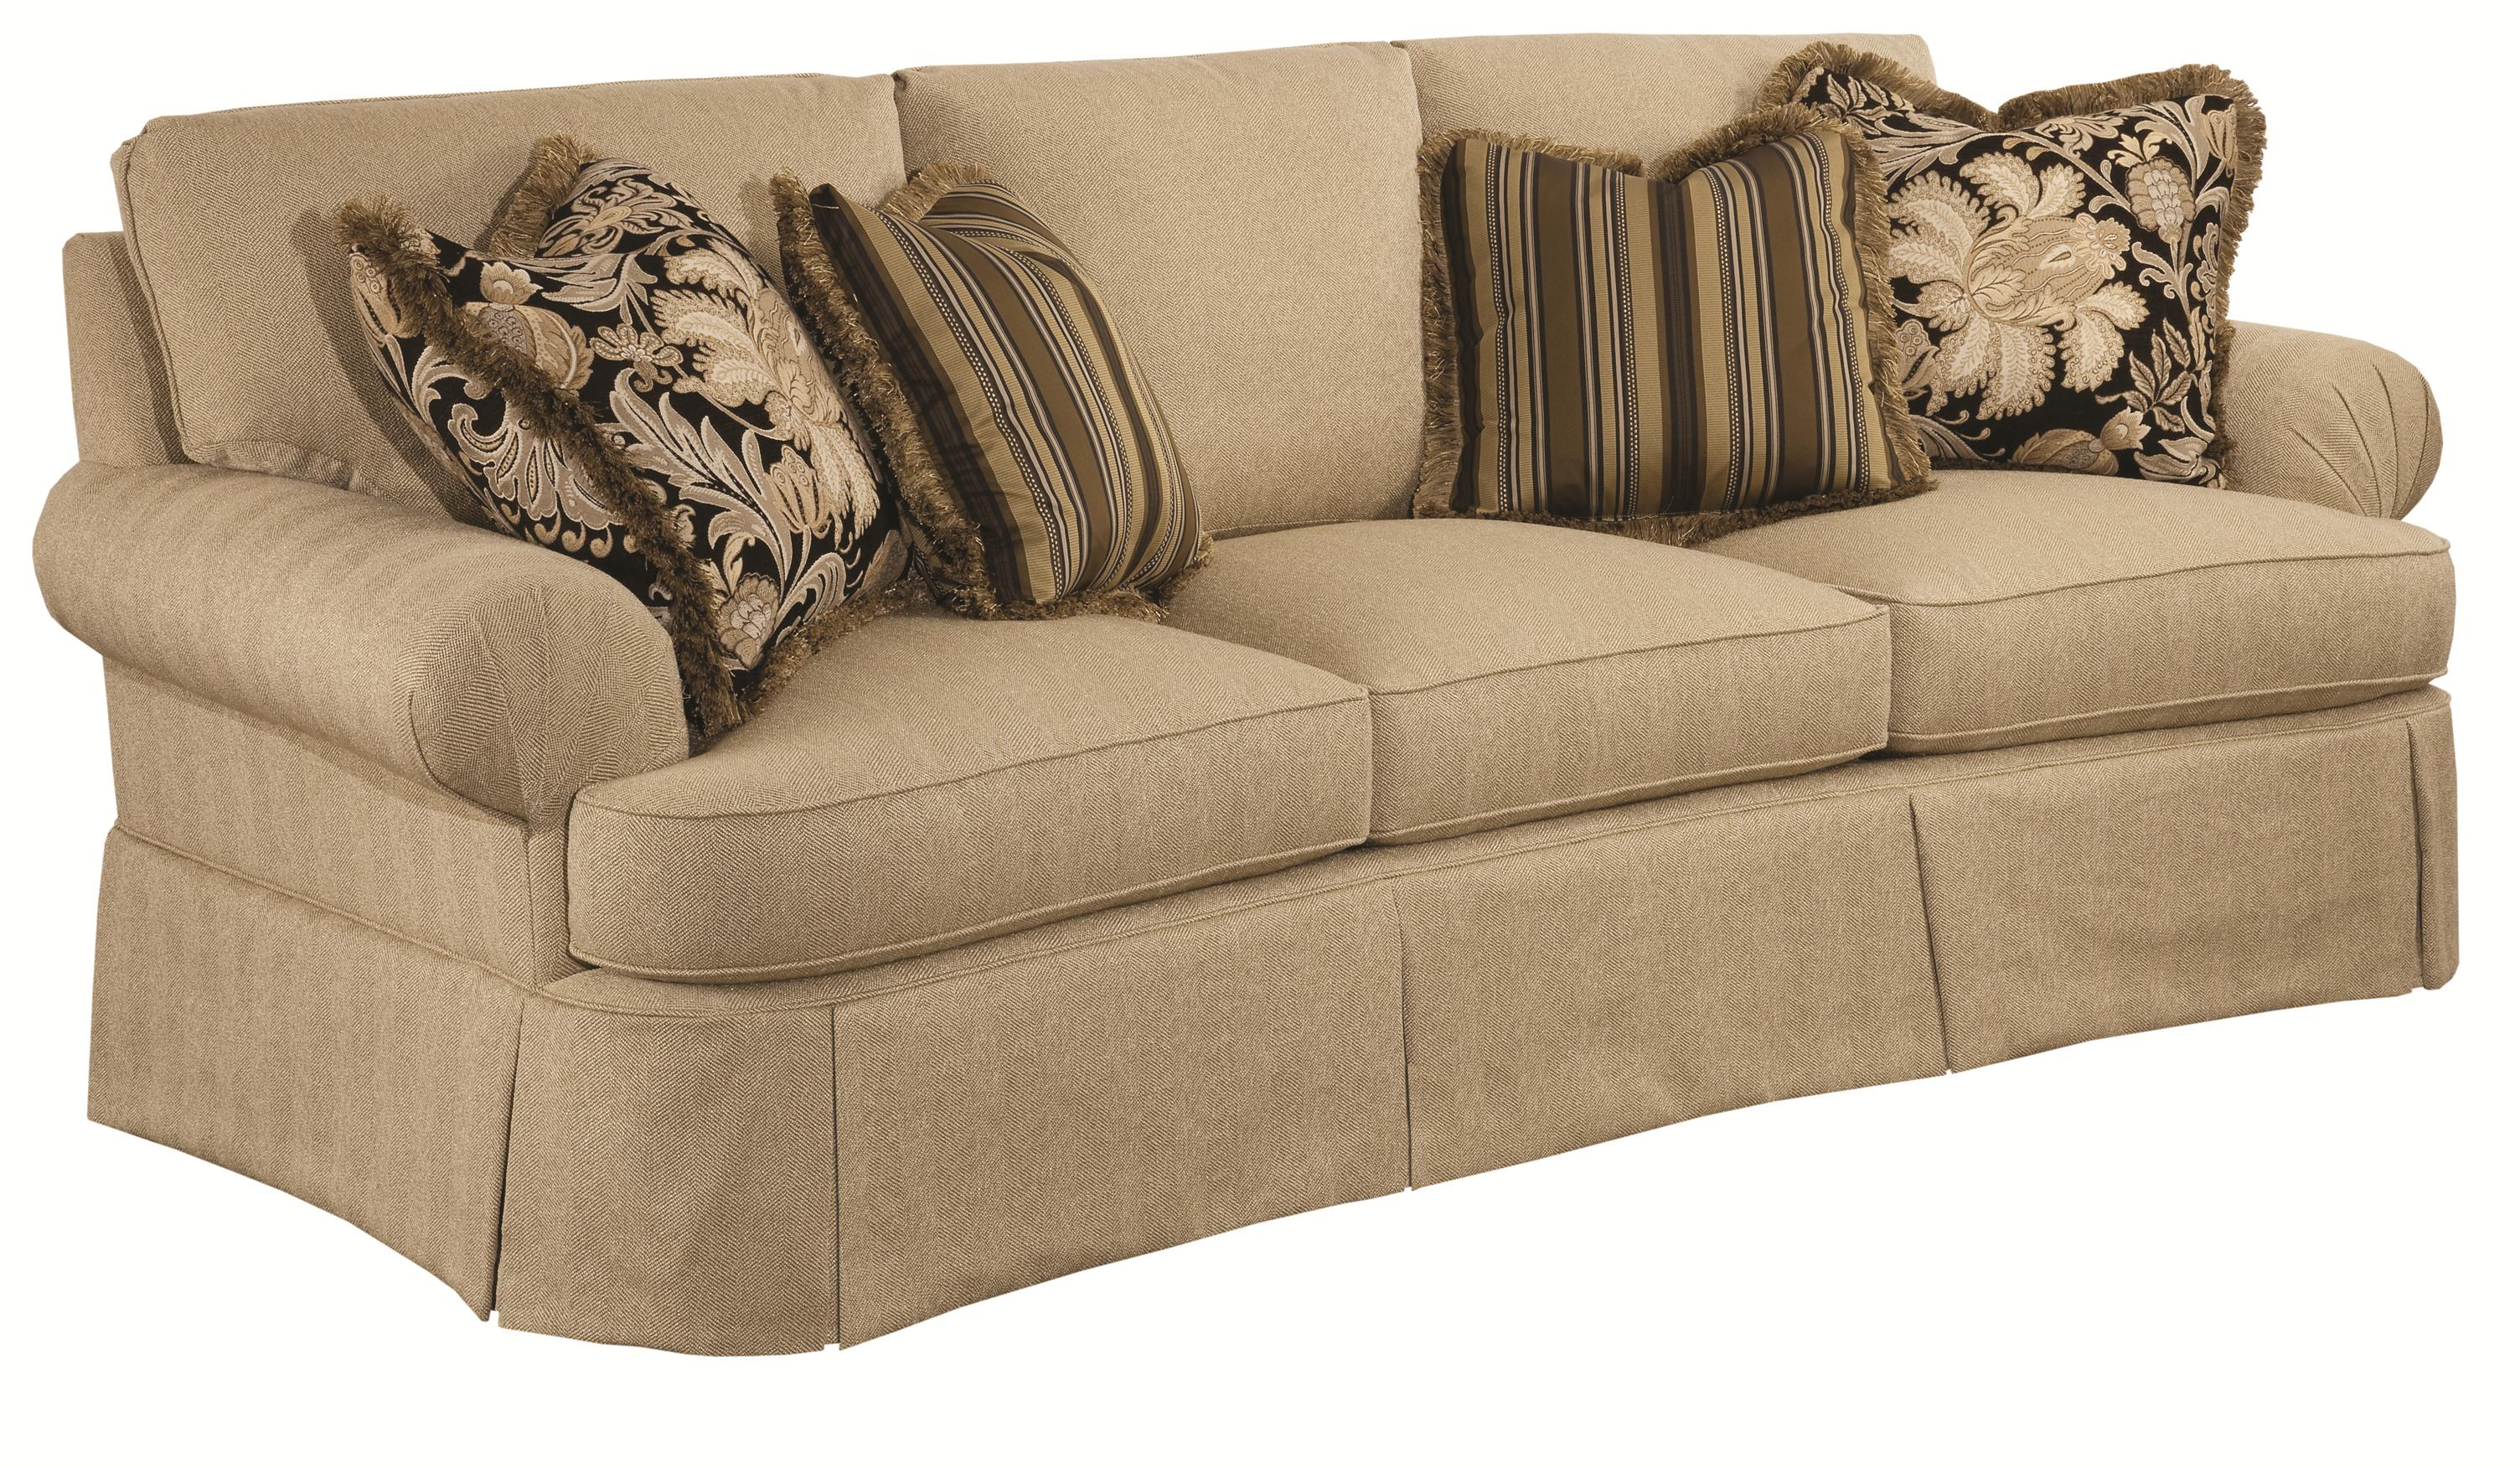 Traditional skirted sofas refil sofa for Traditional sofas and loveseats